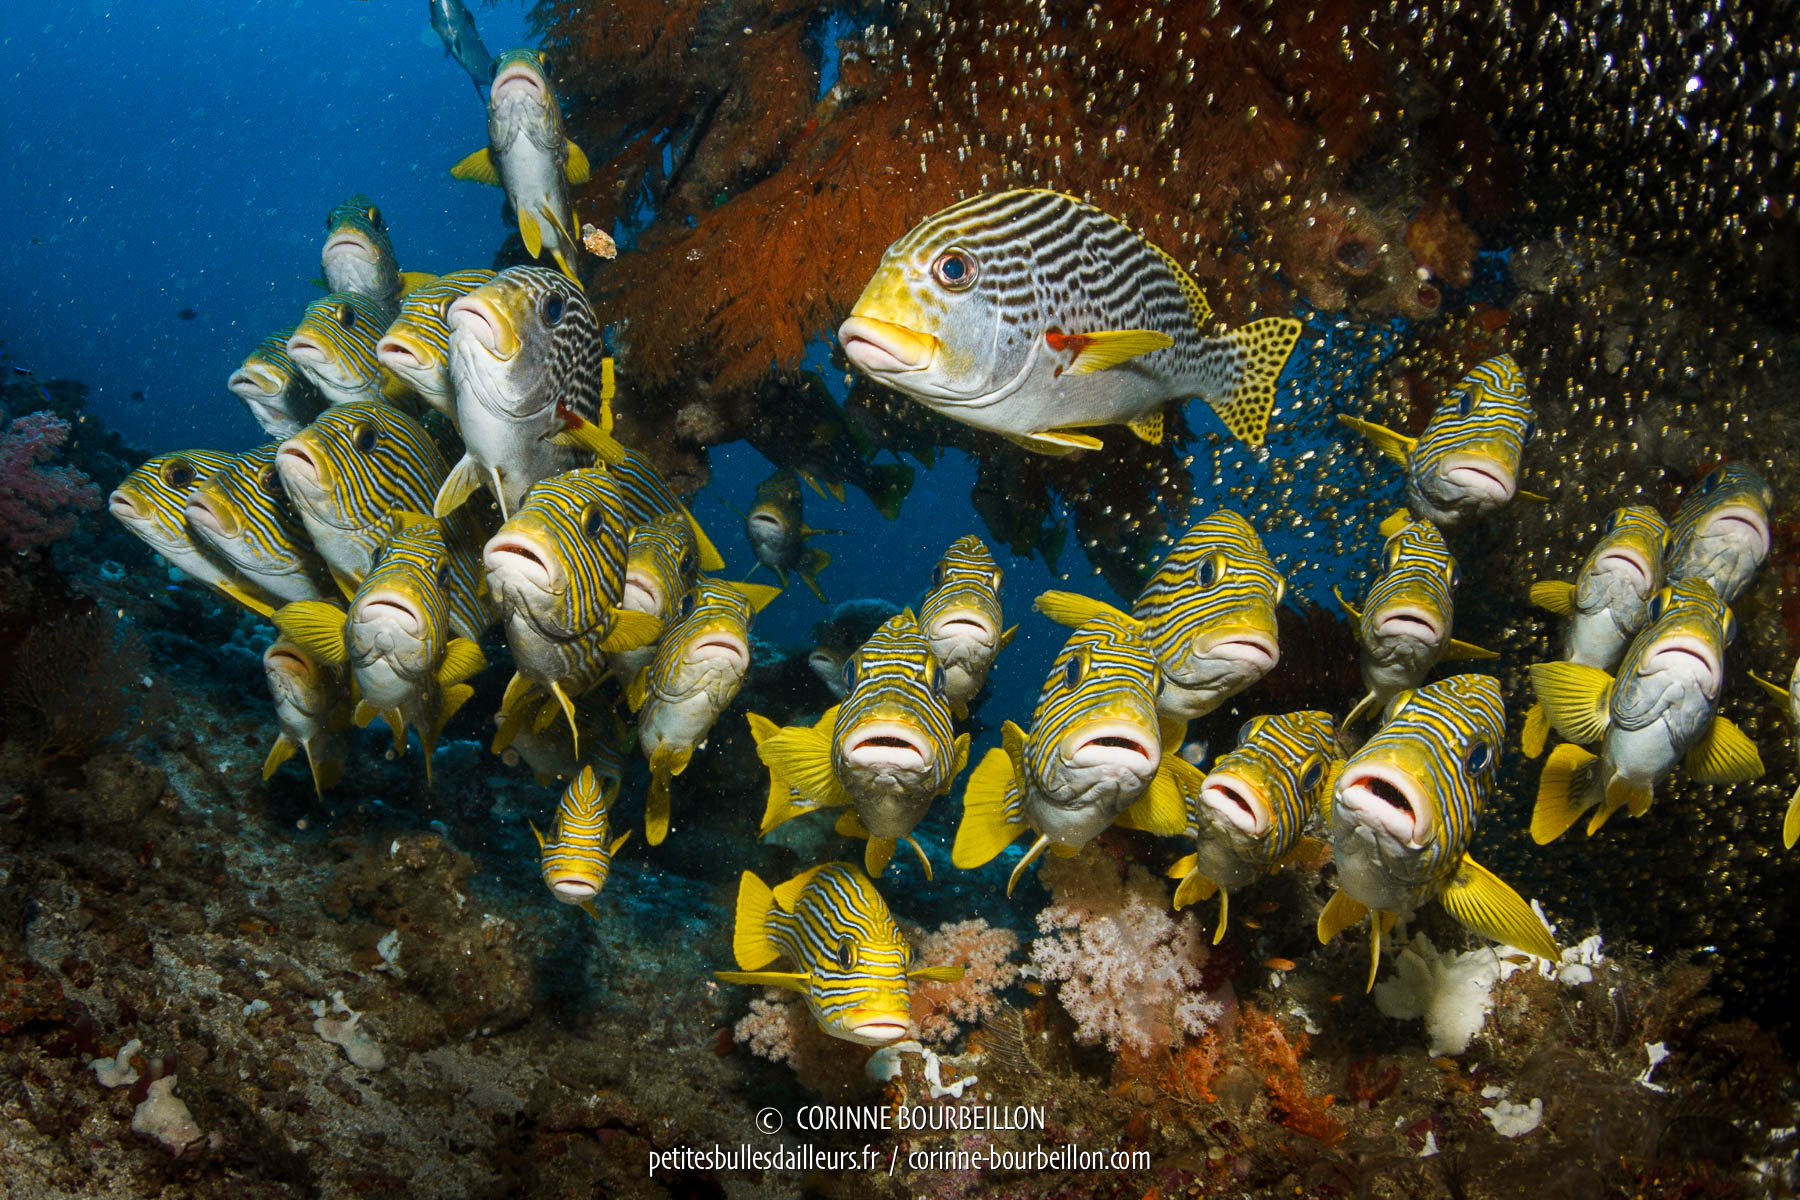 Sweetlips gathered at Otdima reef. (Raja Ampat, West Papua, Indonesia)